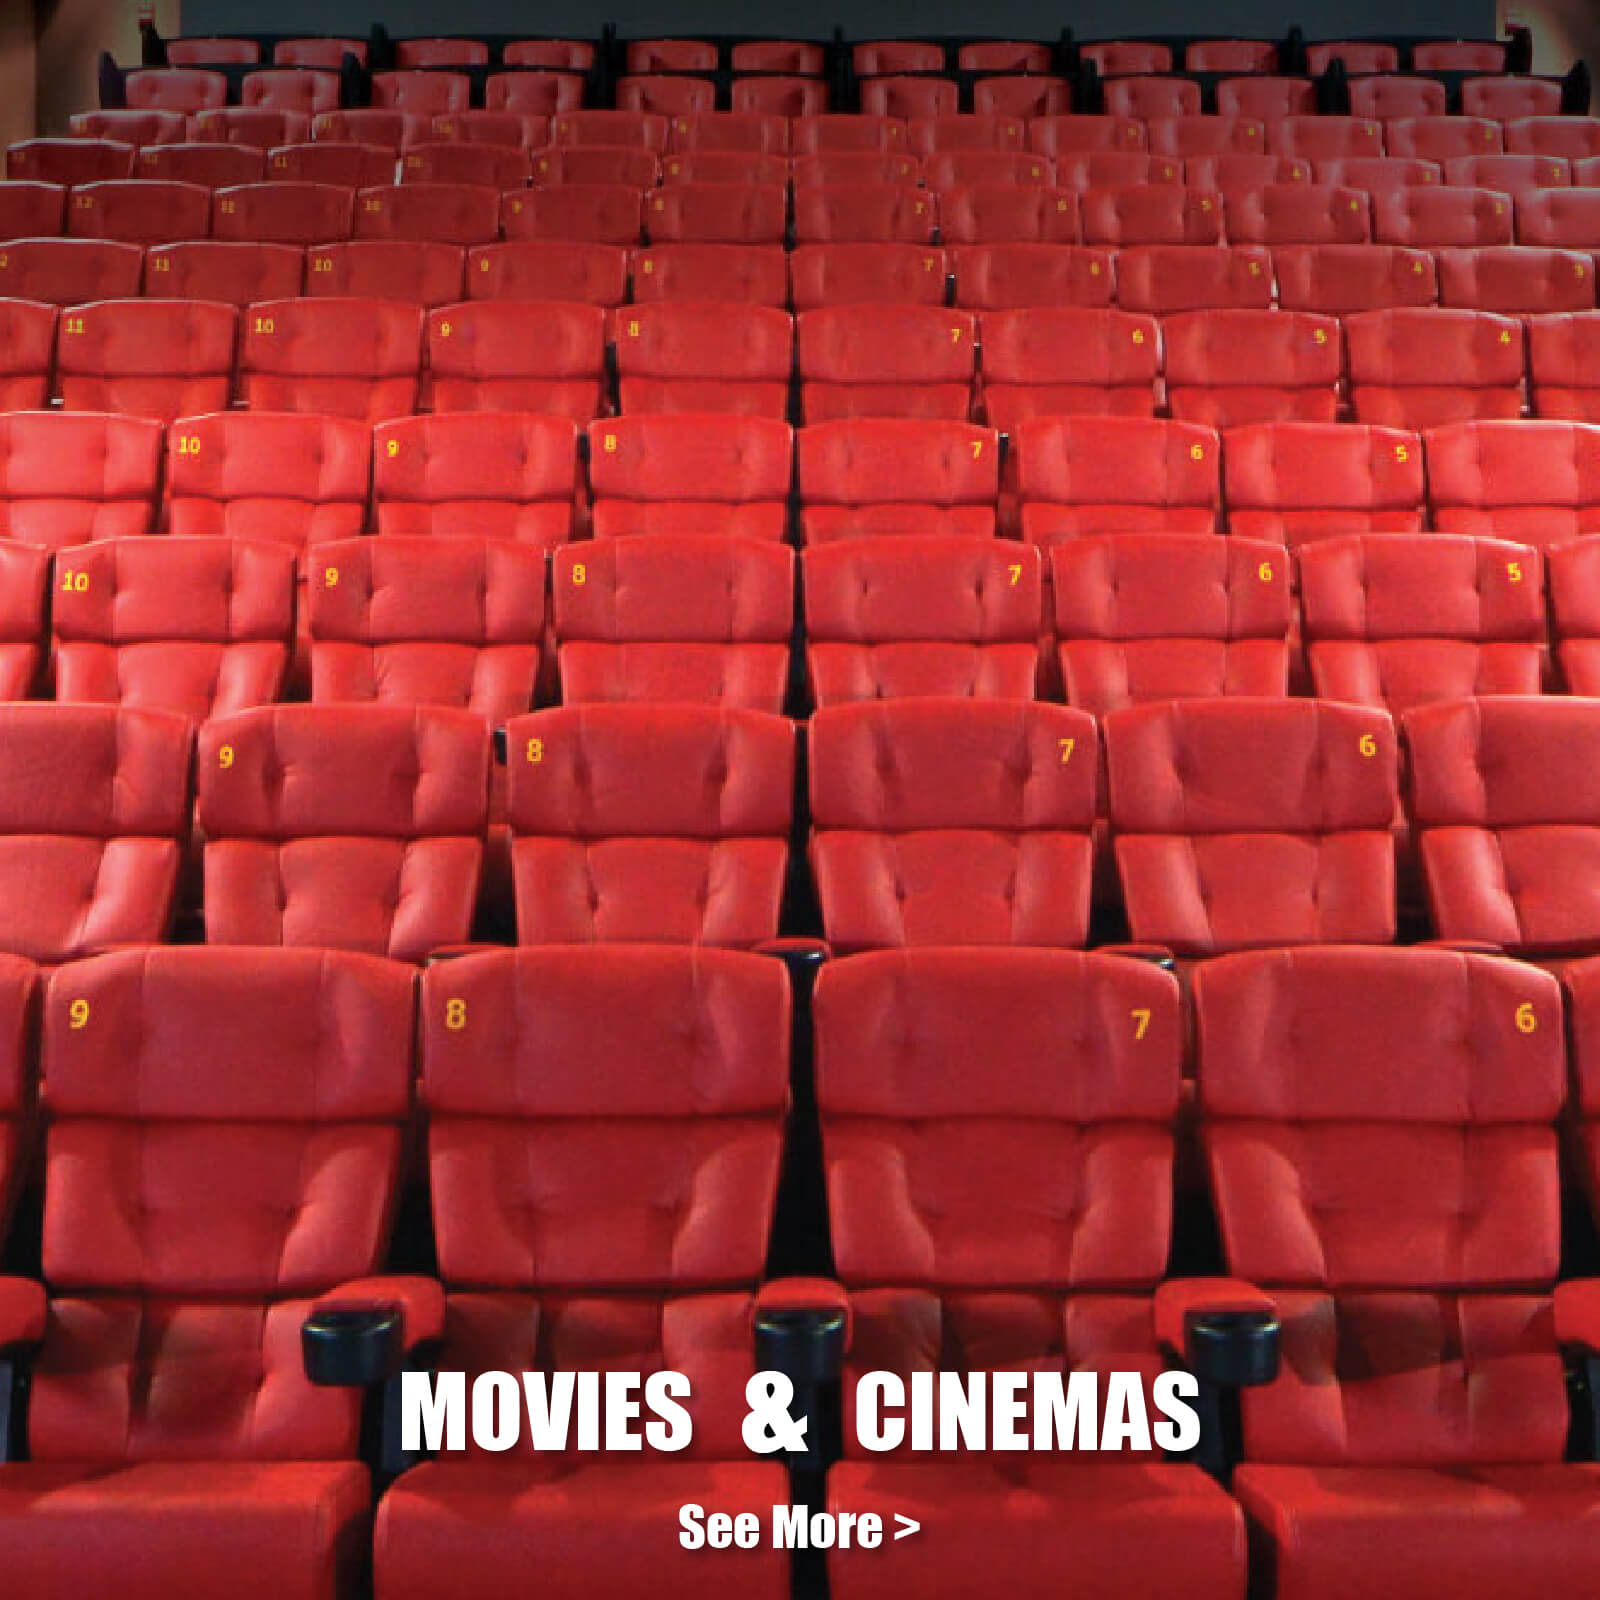 Movies and Cinemas Image - Our Businesses Section - Homepage